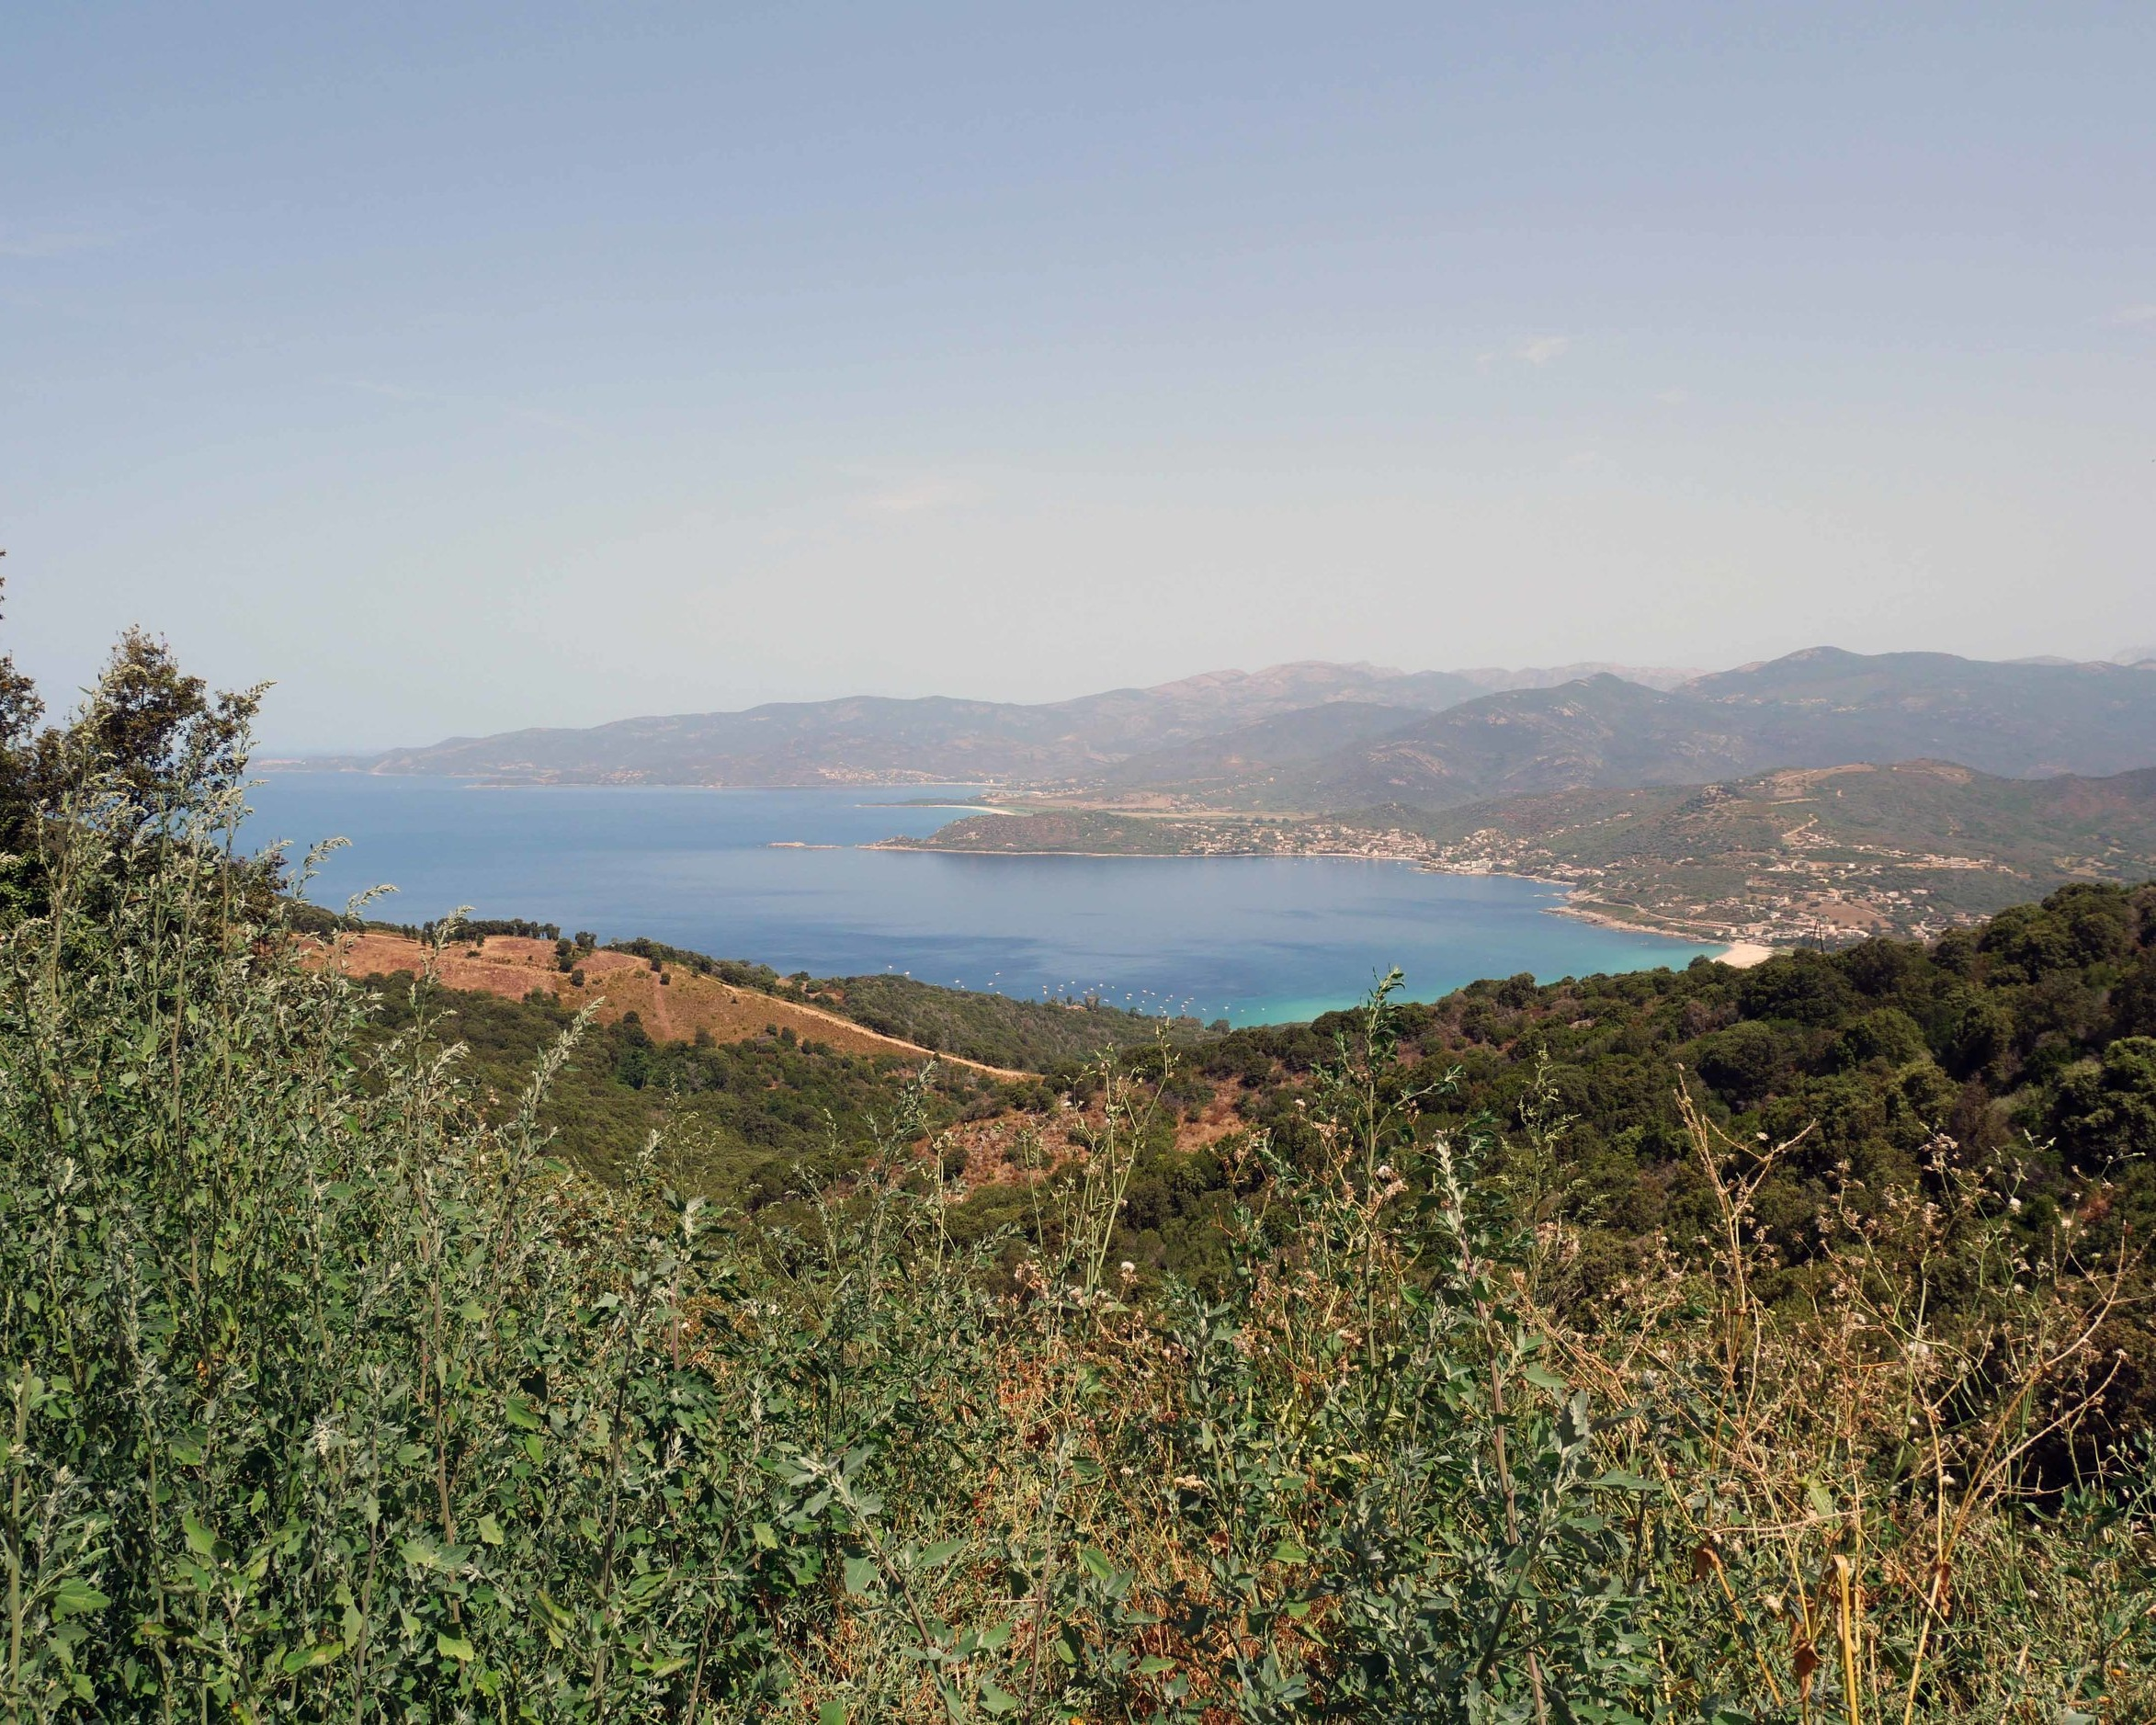 Scenic drives through the Corsican mountains, with views of Corsica beaches in the distance